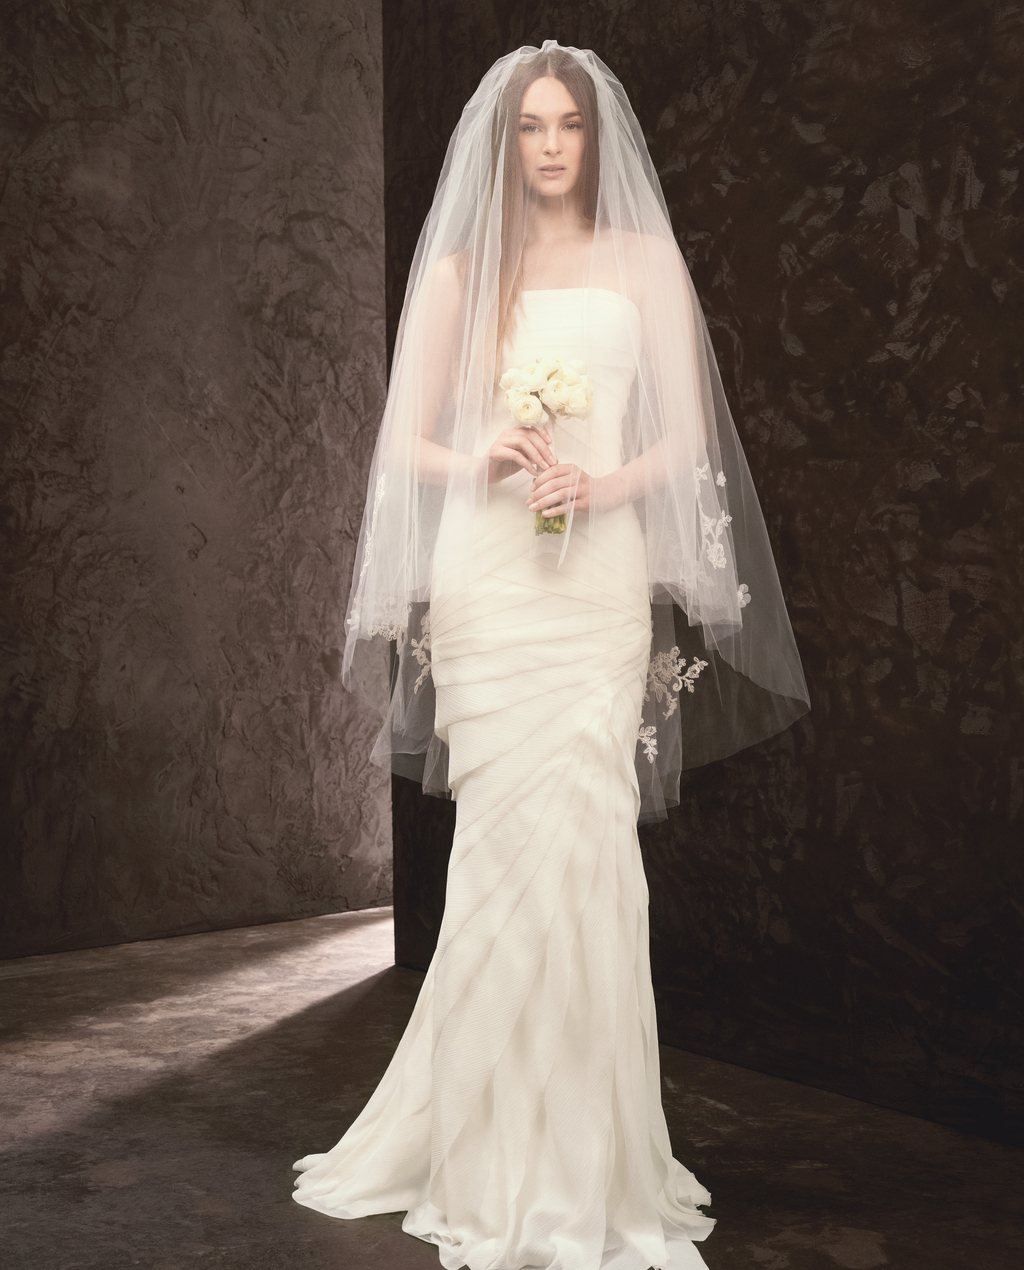 Spring-2013-wedding-dress-white-by-vera-wang-bridal-gowns-style-vw351146.full